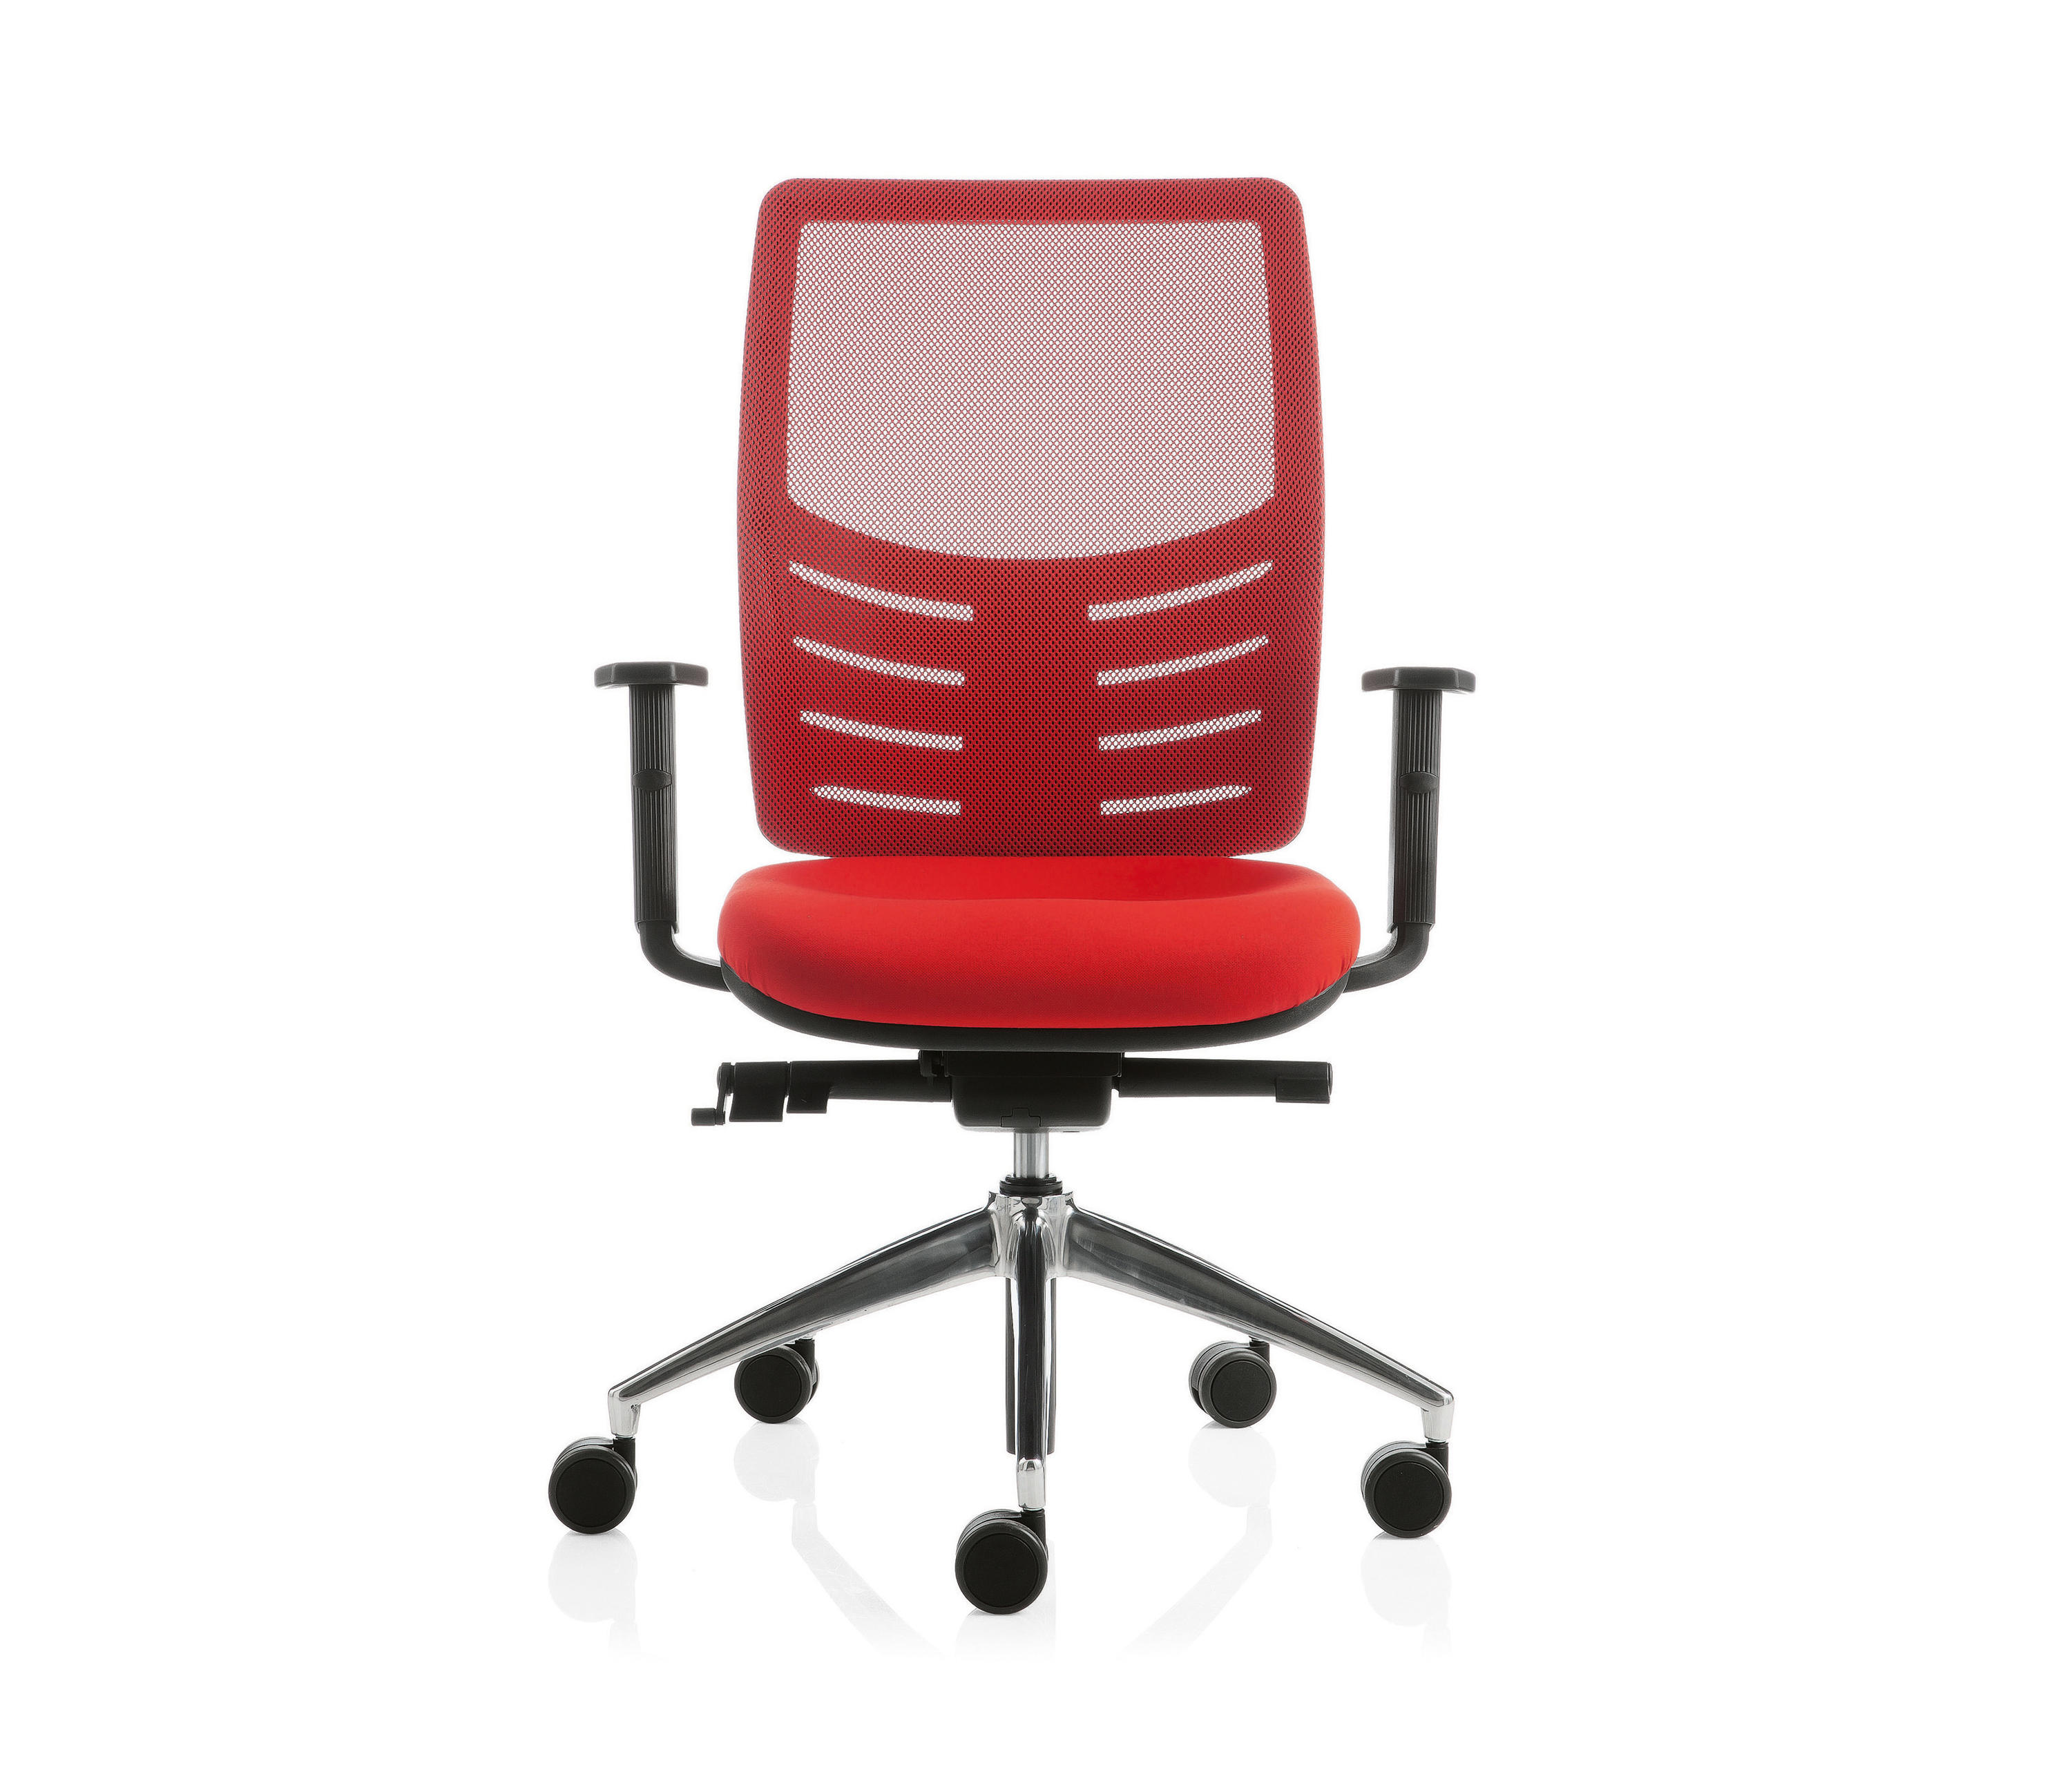 swivel chair em portugues different designs 46 chaises cadres de emmegi architonic